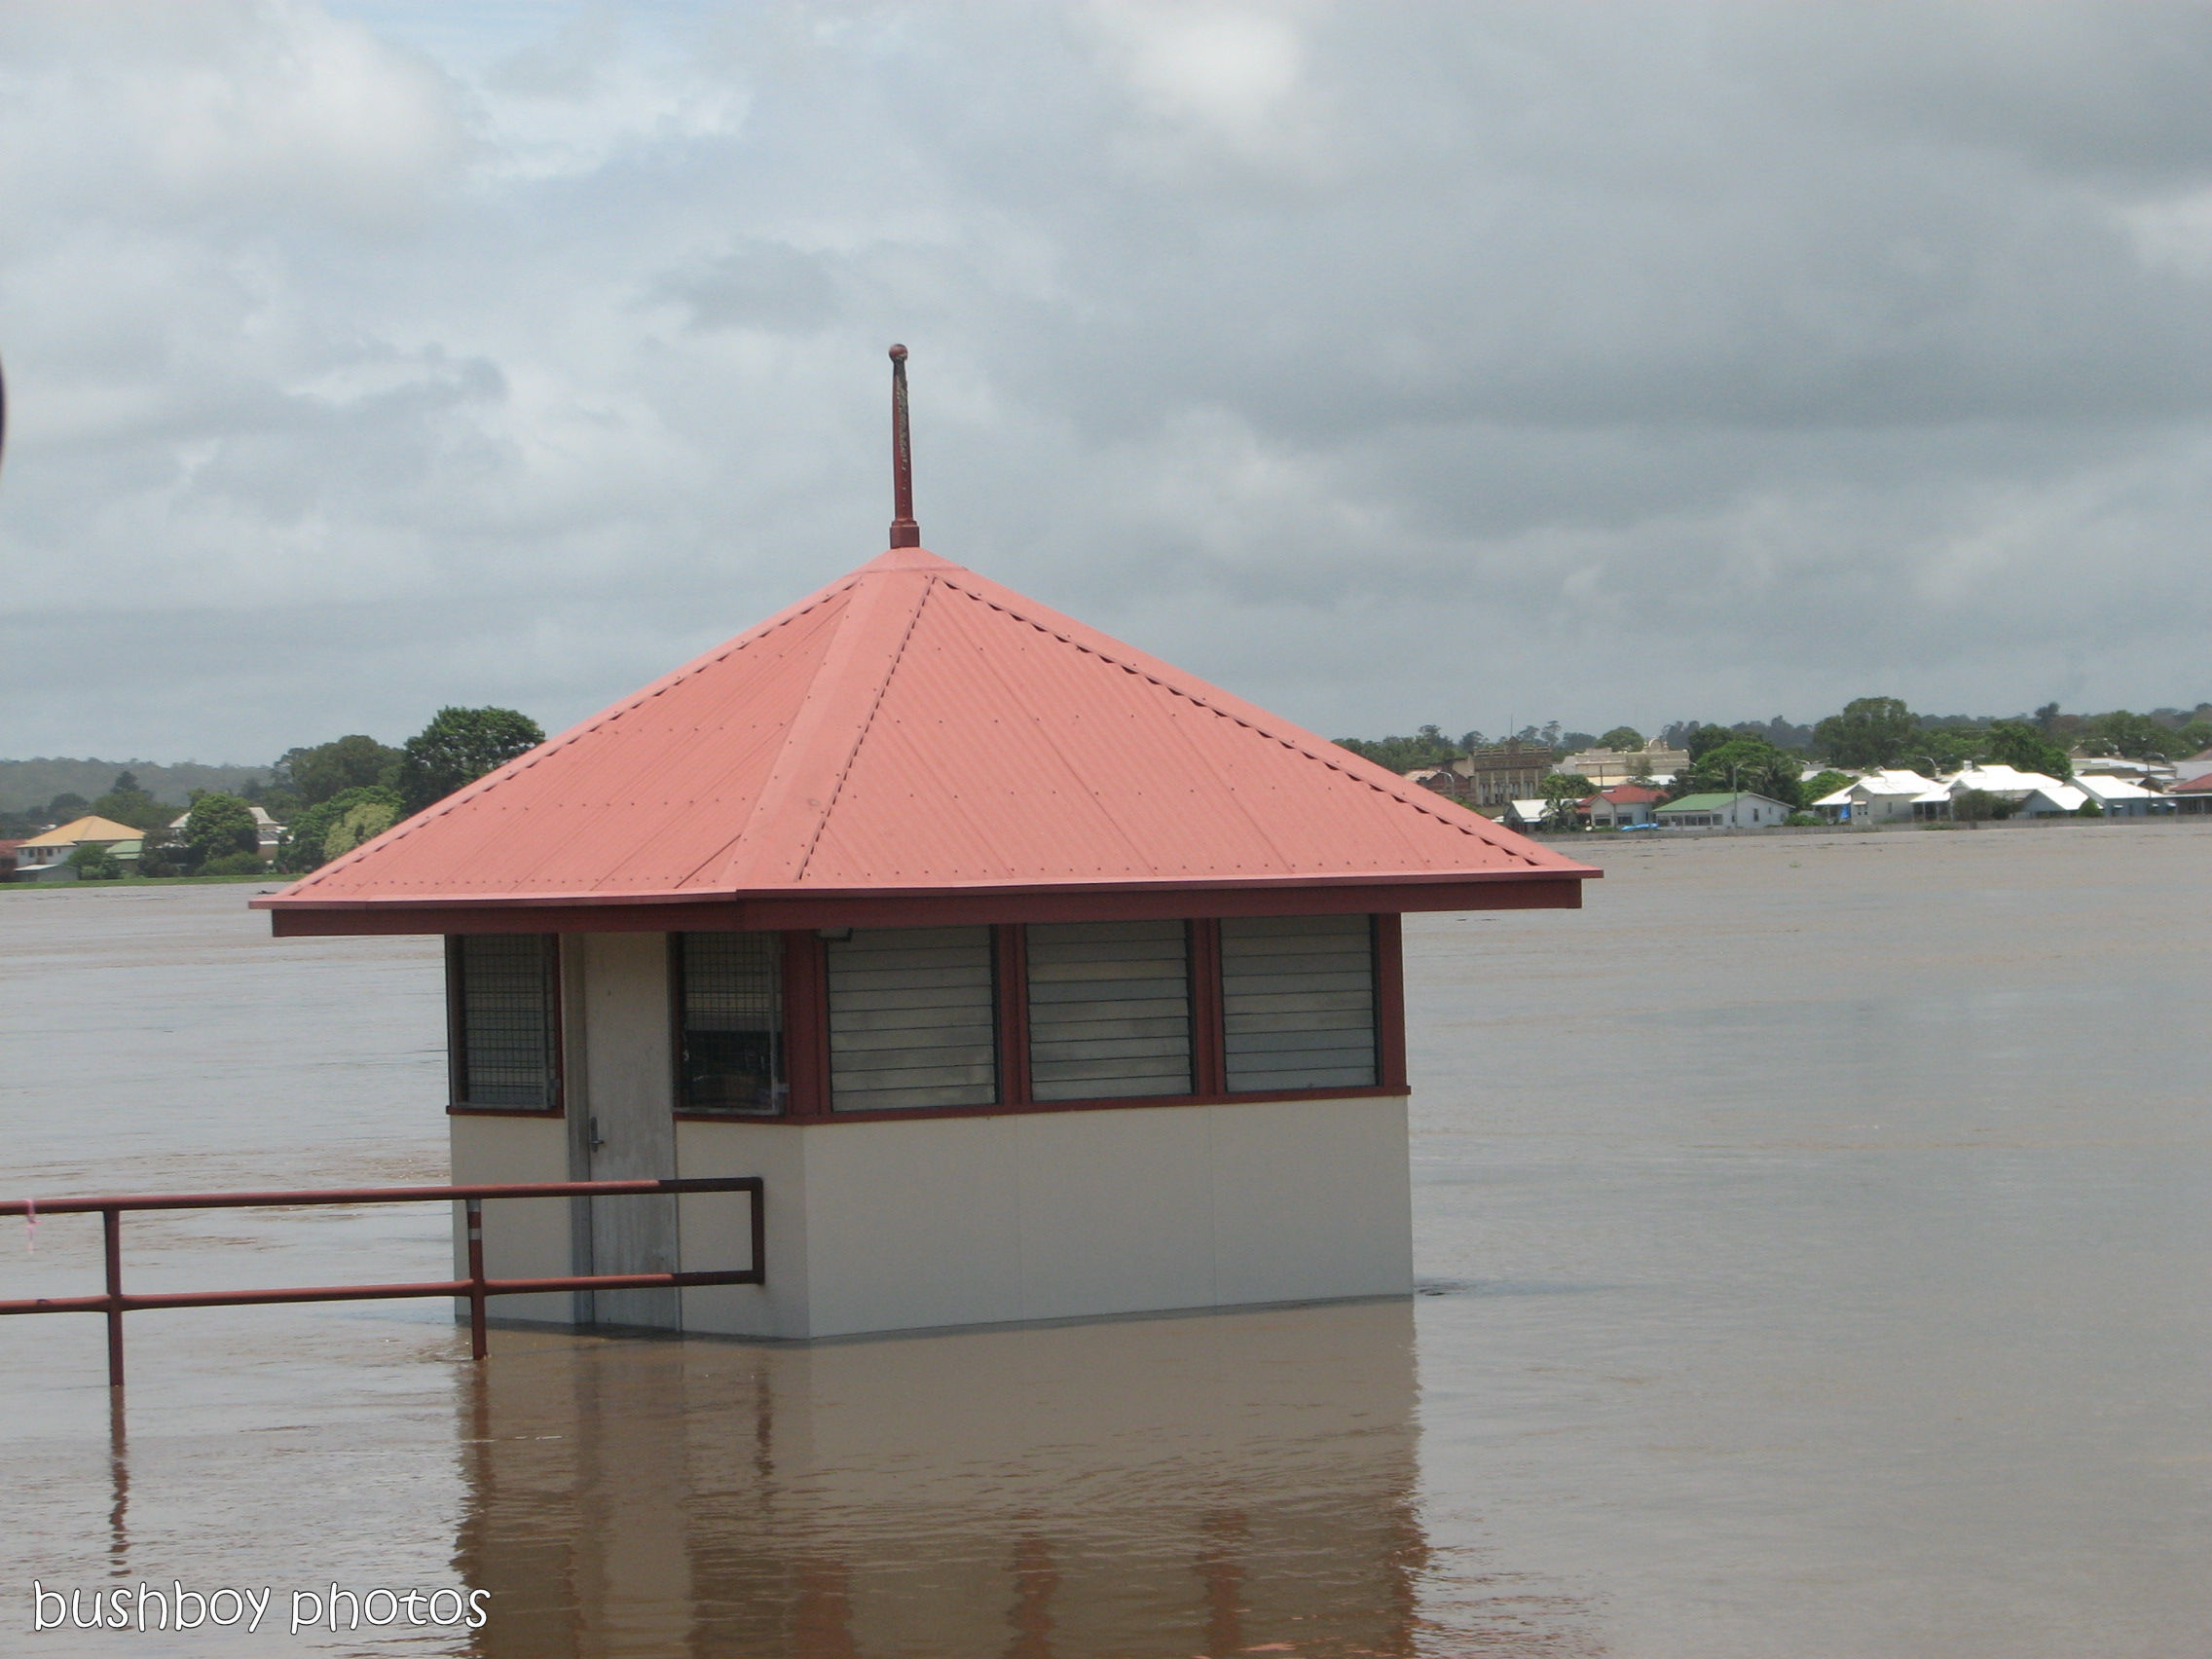 170426_water_grafton flood_boat shed tower